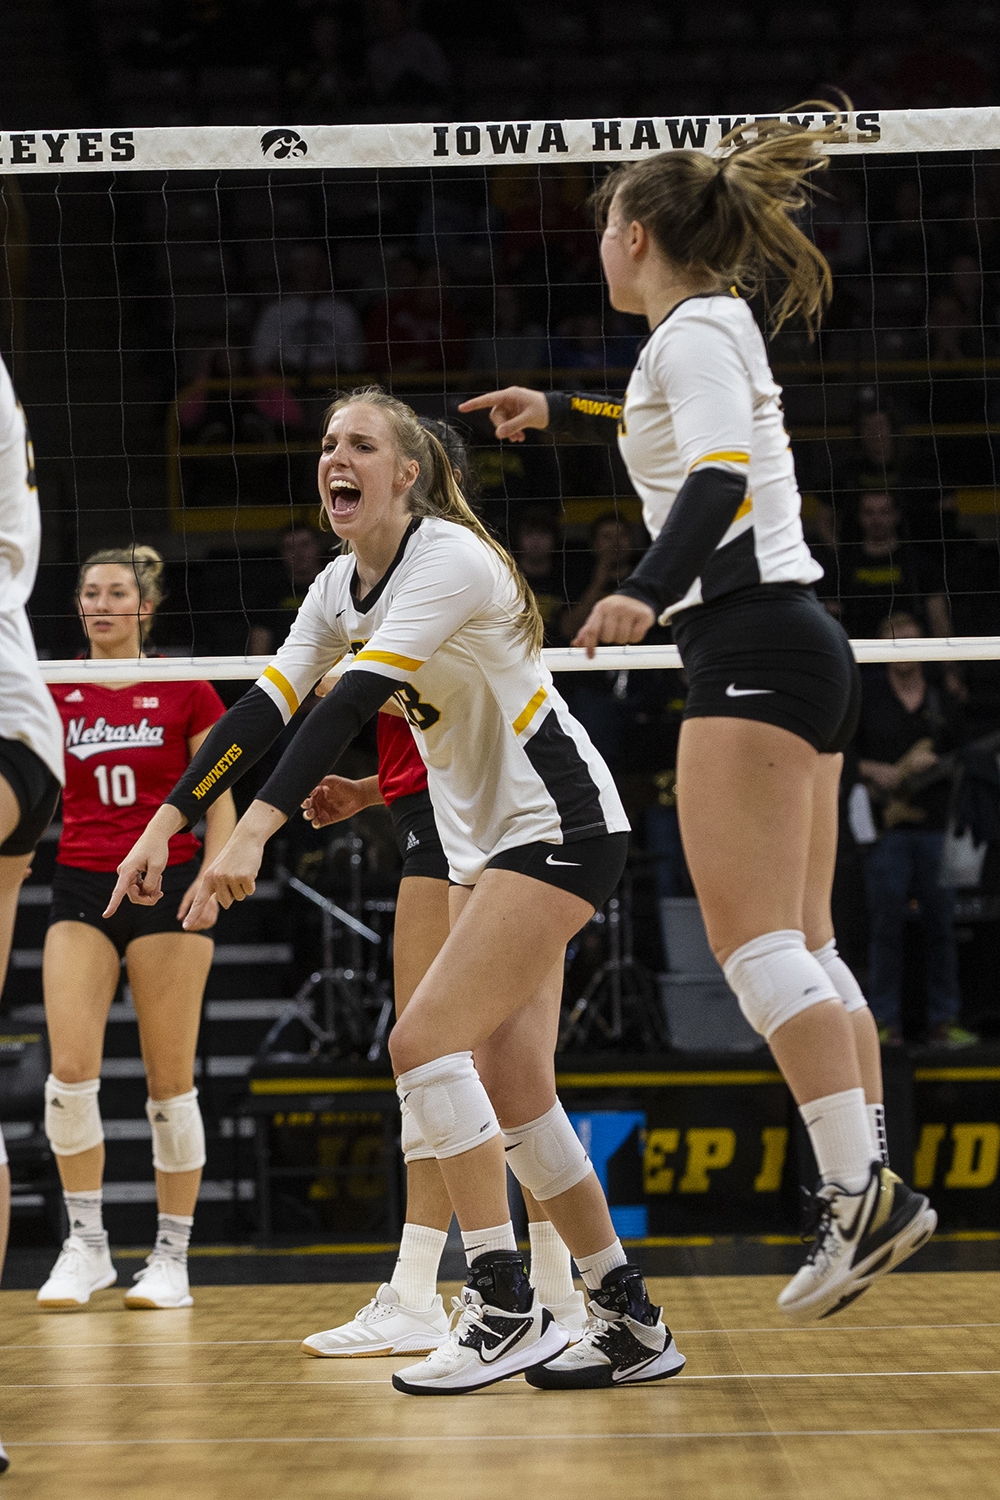 Middle blocker Hannah Clayton celebrates after her team scores a point against the Huskers. The Huskers defeated the Hawkeyes in three sets on November 9, 2019, at Carver-Hawkeye Arena.